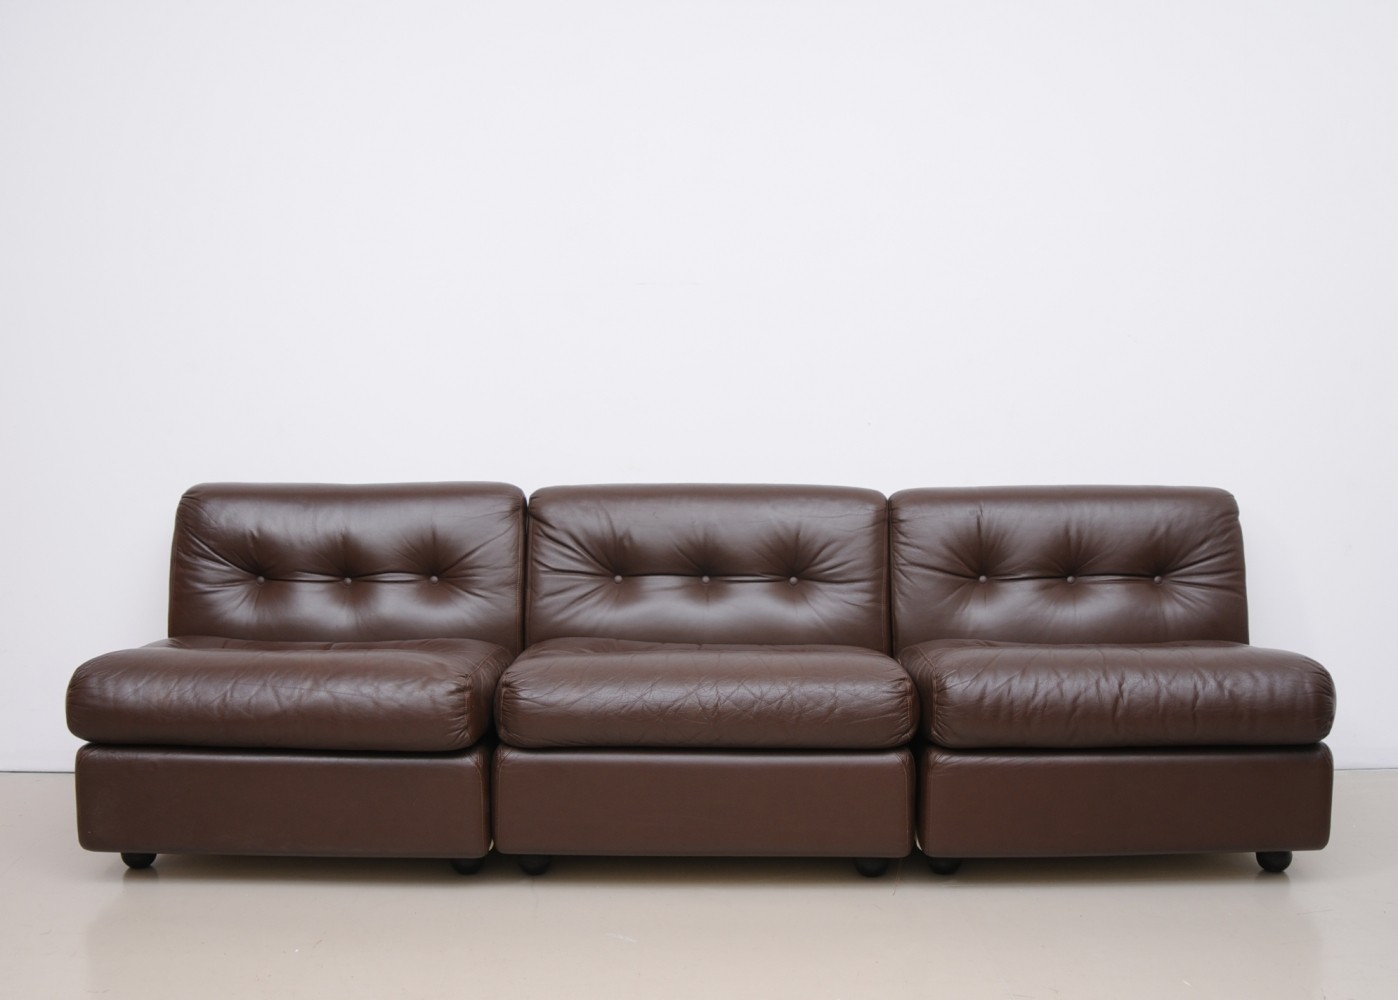 Amanta sofa by Mario Bellini, 1960s